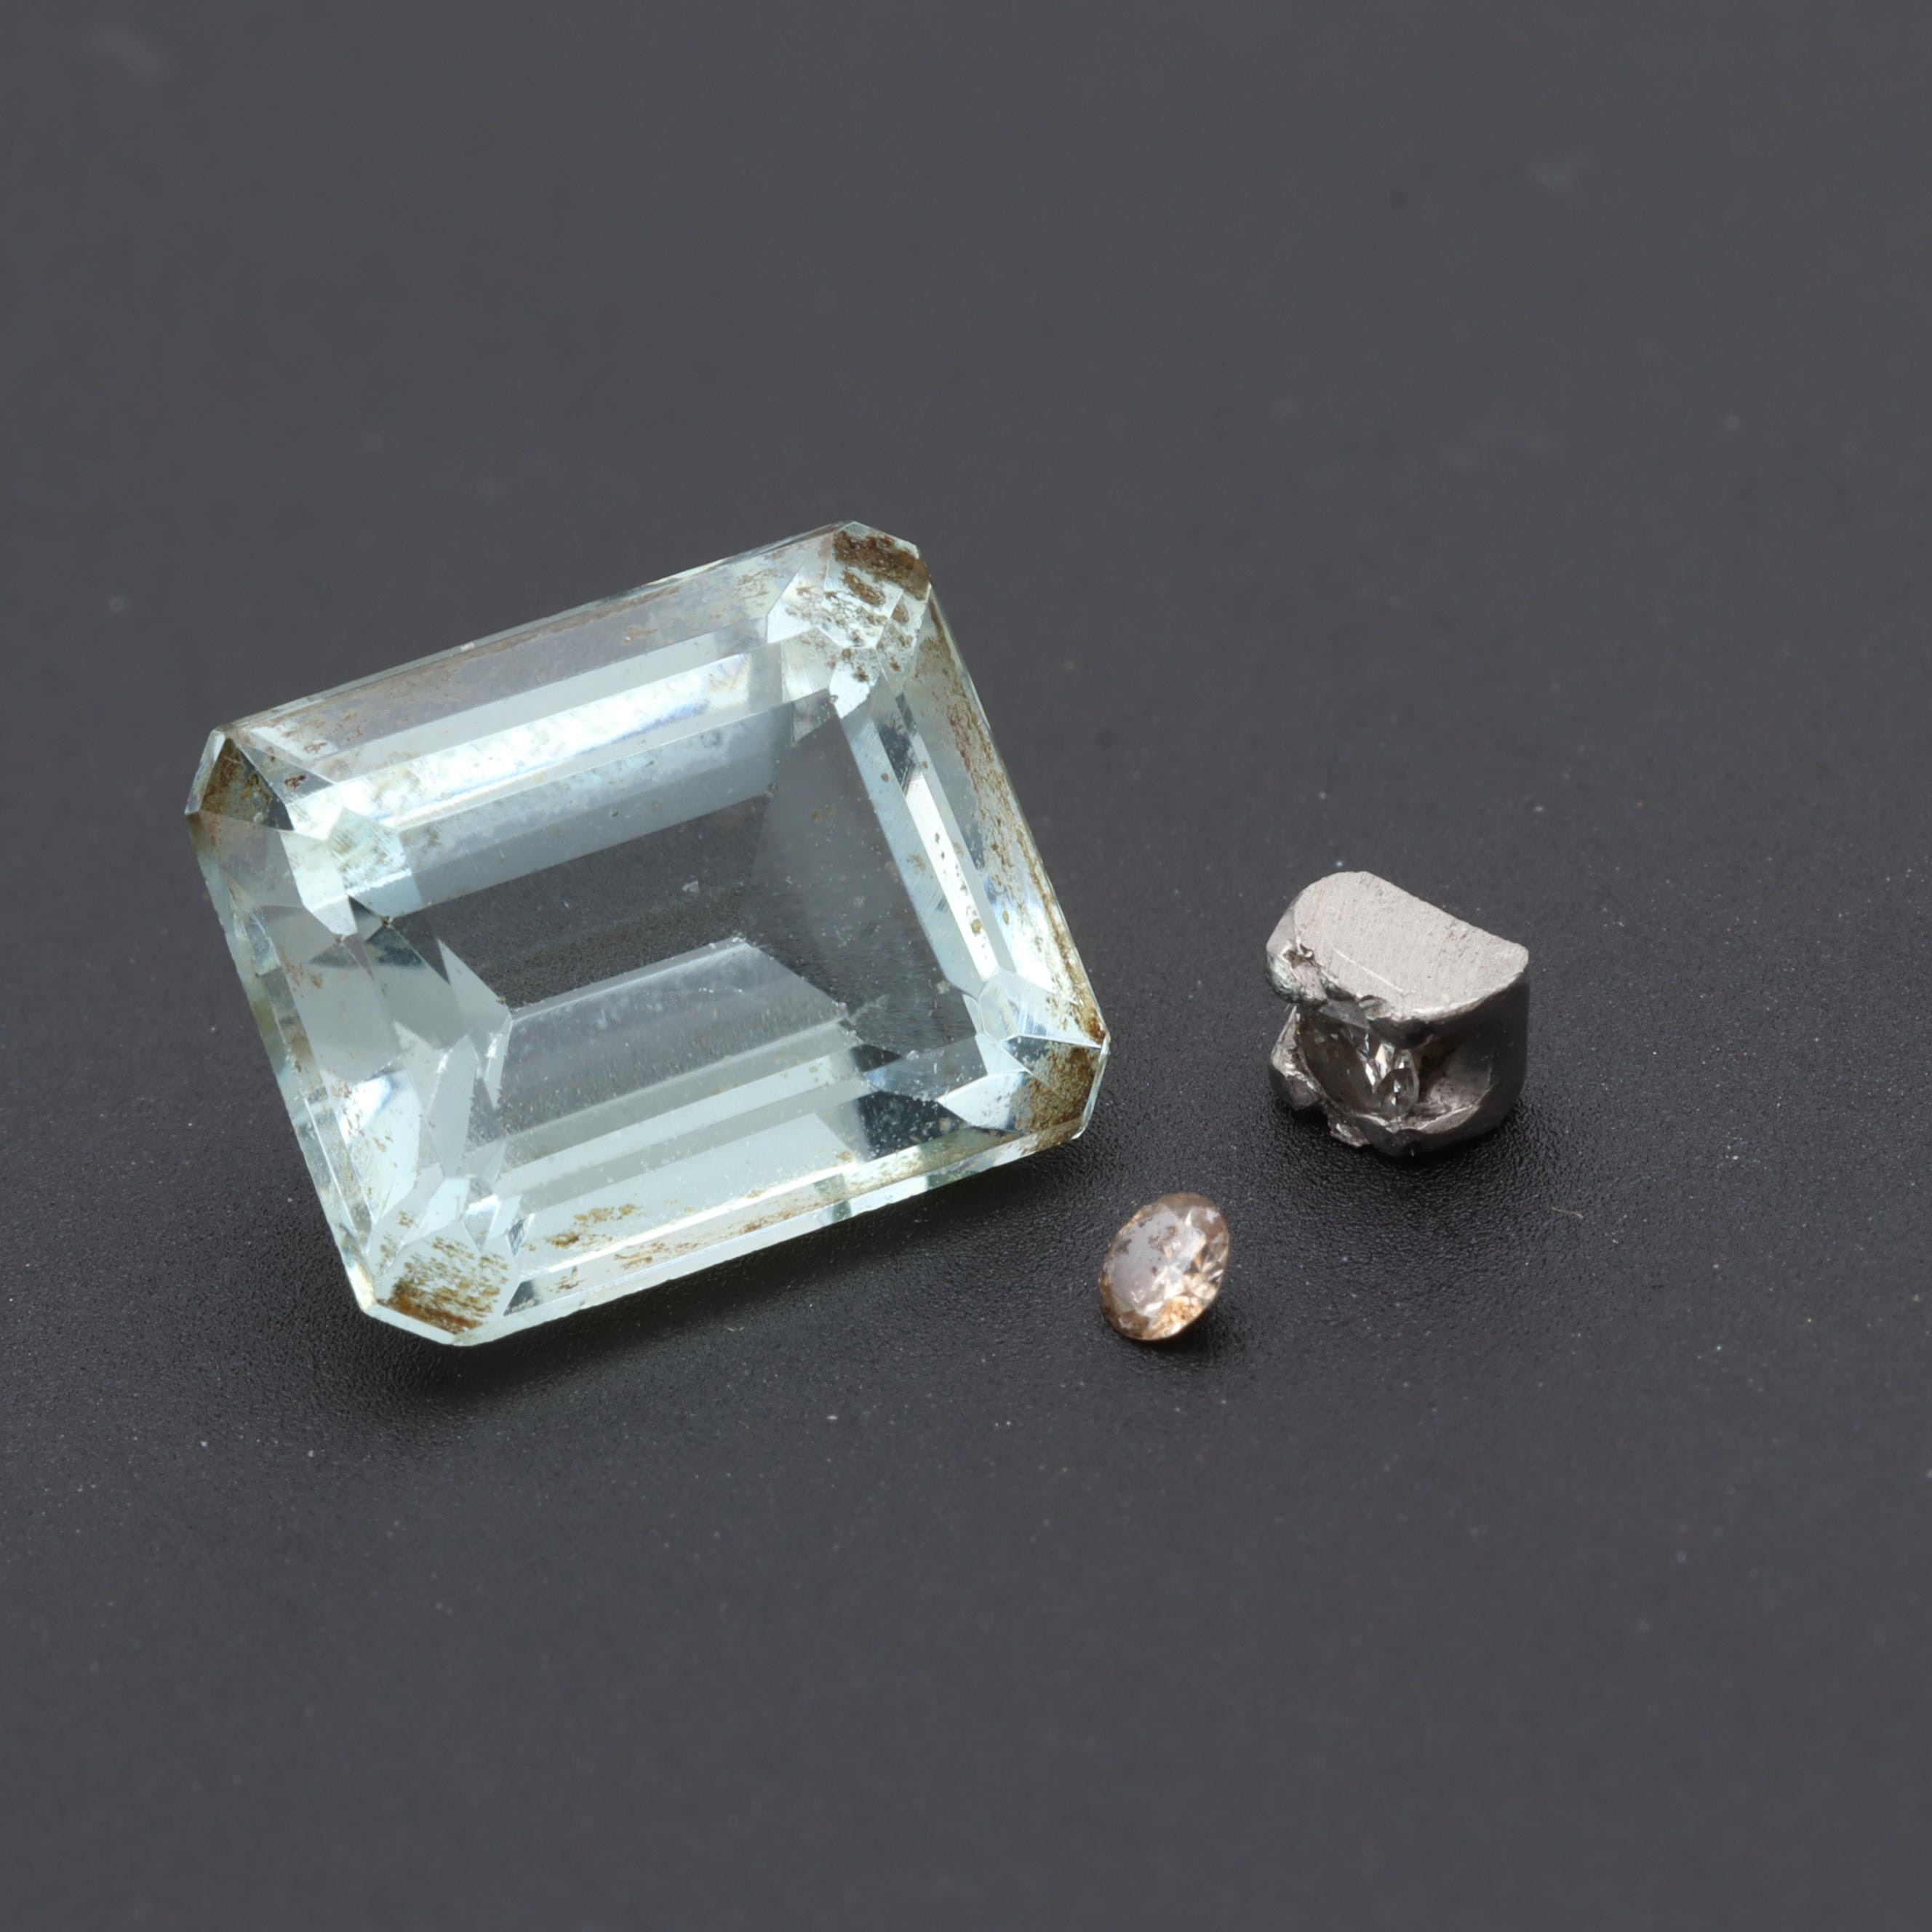 Loose 3.05 CT Aquamarine and 0.05 CTW Diamond Selection